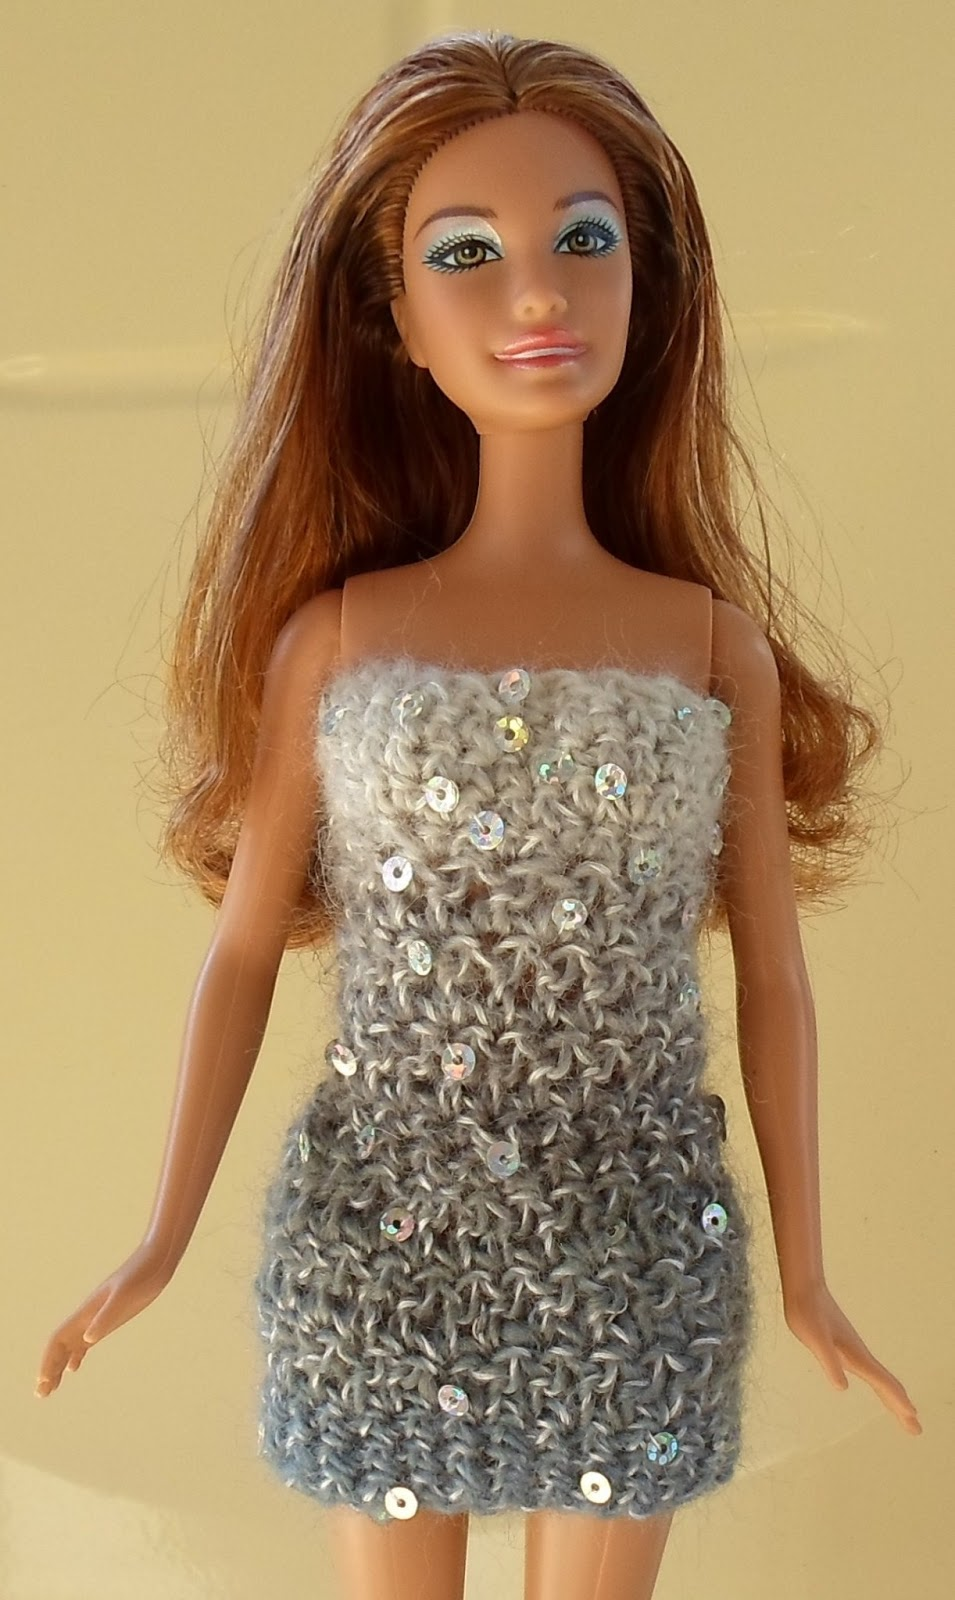 Happier Than A Pig In Mud: Blinged-Up Crochet Barbie ...